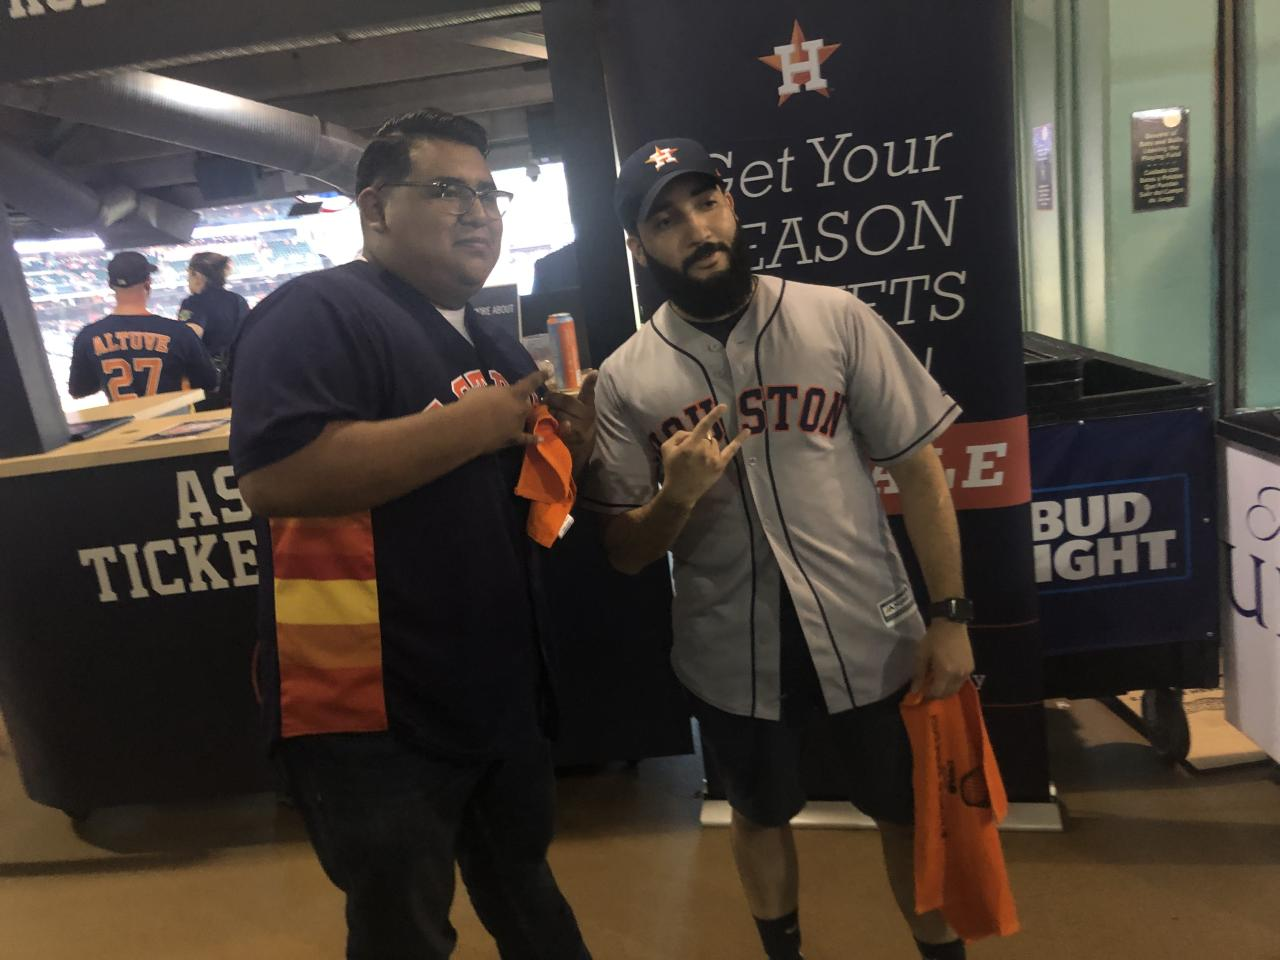 Astros fan pelted with beer at Yankee Stadium gets free tickets, celebrity treatment at World Series